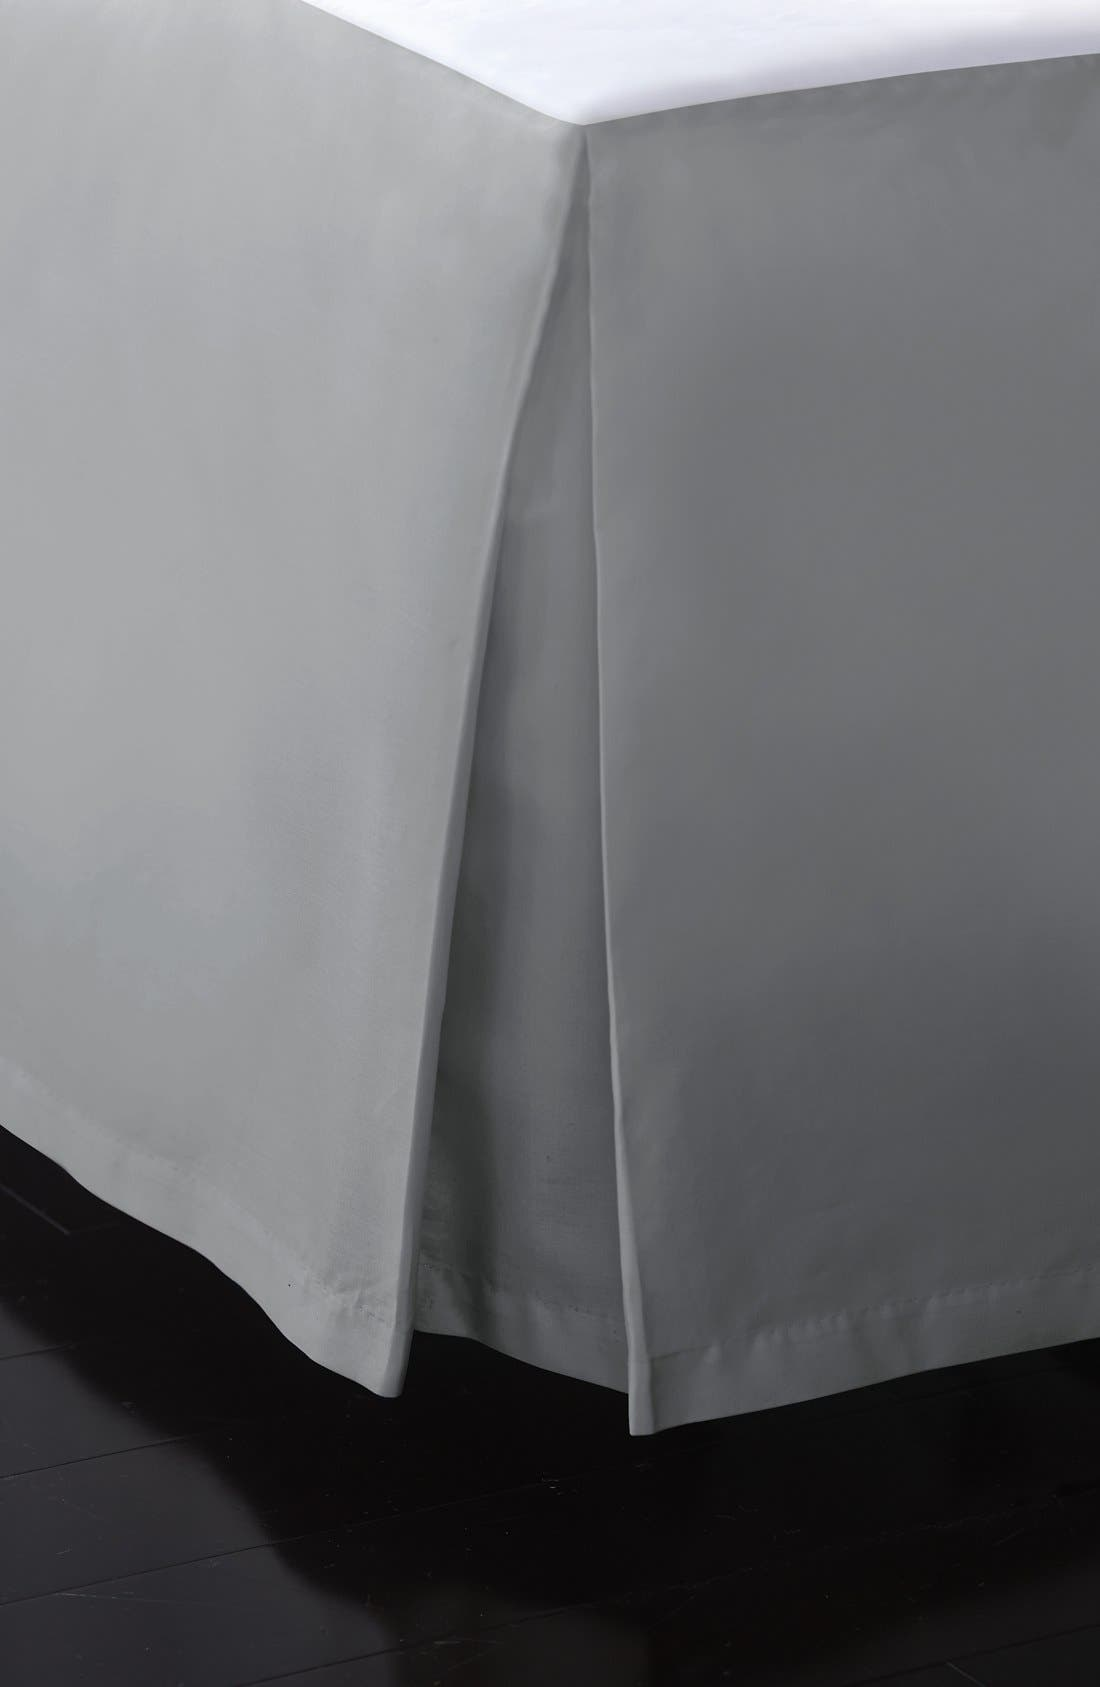 Donna Karan Collection 'Reflection' 510 Thread Count Bed Skirt,                             Main thumbnail 1, color,                             040